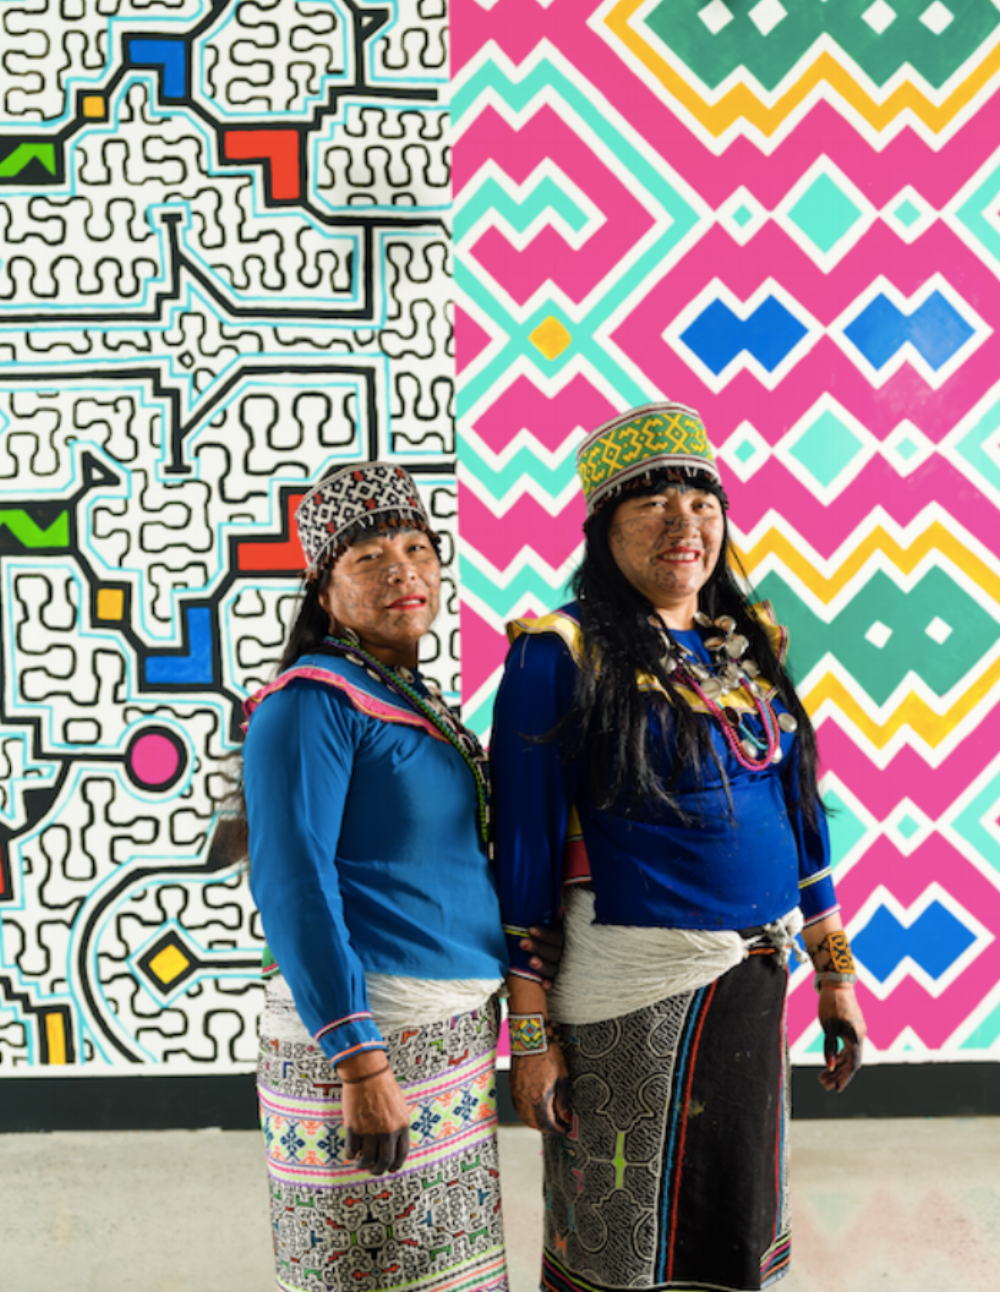 Photo:  Alina Ilyasova / MOA    Peruvian Artists Bring Kené Design to Vancouver   Olinda and Silvia are Indigenous artists from the Peruvian Amazon's Ucayali River region. They belong to the Shipibo-Conibo diaspora, relocating to Lima Peru in the 1990s.  Both women began working as artists in 2016 and specialize in Kené, an ancestral, women-only, art form. Those who train in Kené learn to dream and see designs in their minds and transcribe the patterns they imagine onto the skin as tattoos, textiles, and other mediums. When a woman learns how to materialize these designs, her abilities are considered sacred.  Not only is the art form passed down from generation to generation, but it has cultural and mythological significance in Shipibo-Conibo culture. Its geometric designs resemble patterns and systems found in nature including snakeskin, constellations, the forest, and the Amazonian river. These strong ties to nature reflect people's relationship with all-powerful gods that sustain their communities and surrounding natural environments.  While Olinda and Silvia's designs can be seen on the walls of Lima Peru, their installation at the Museum of Anthropology and mural on Granville Island, is the their first ever international project. This opportunity has led to new possibilities for the artists who have been invited to paint and share their experiences in other parts of the world.